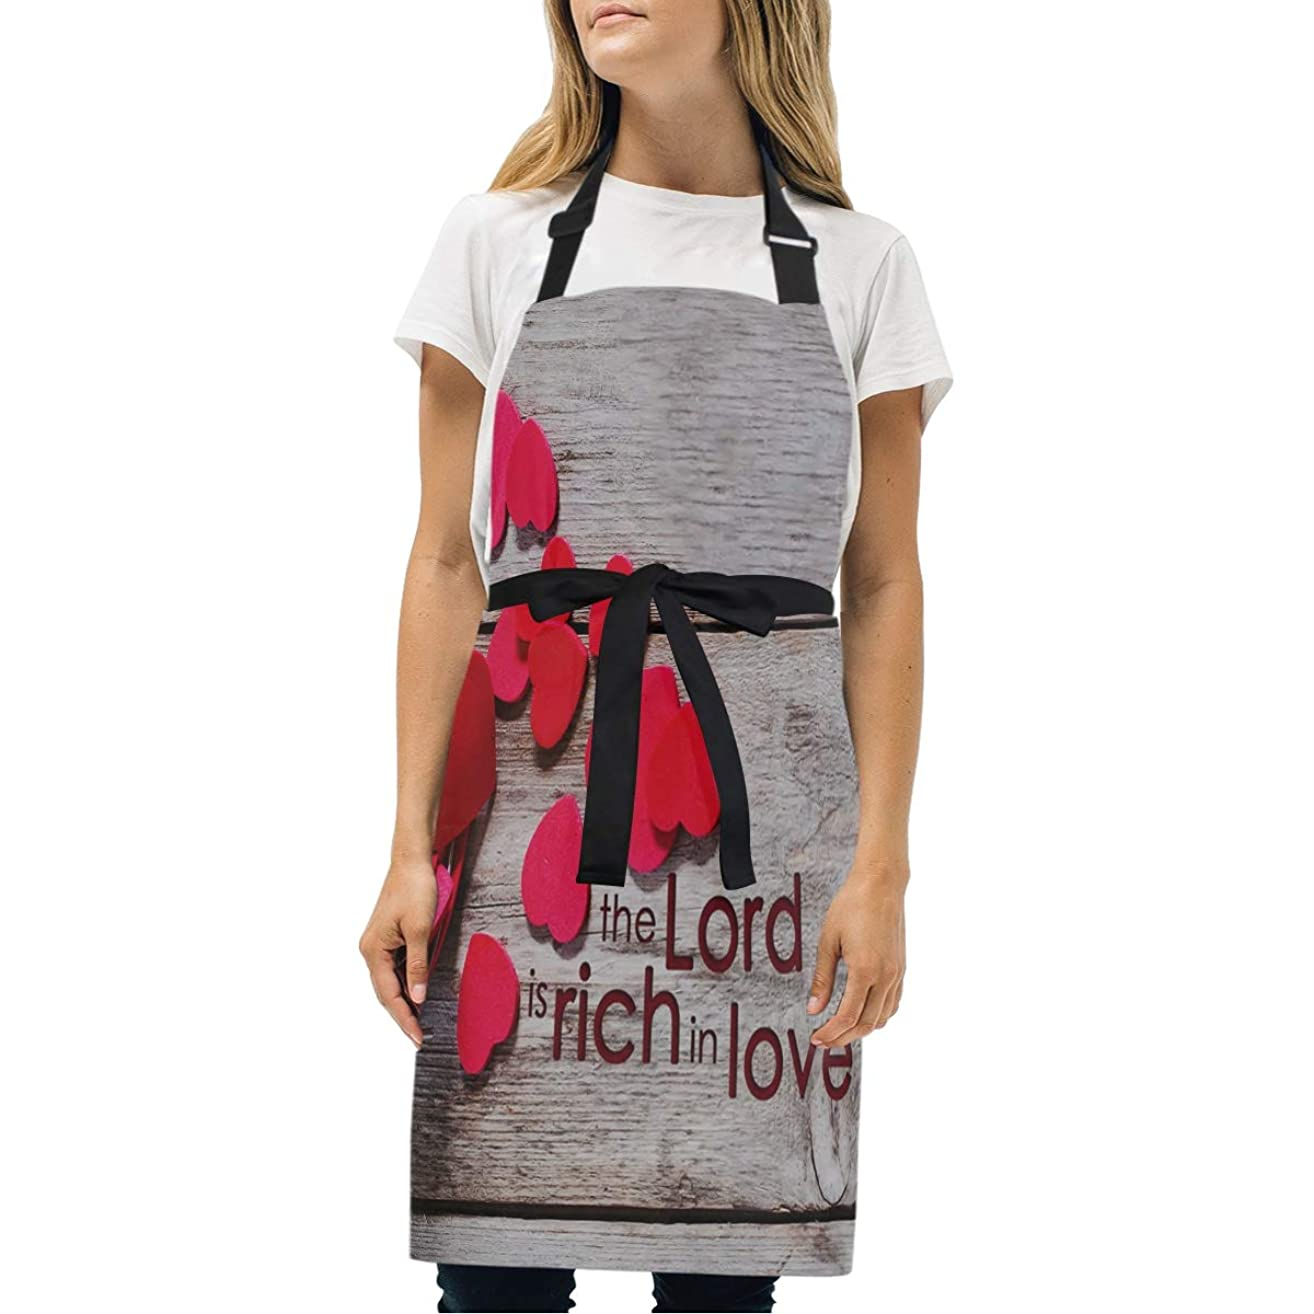 HJudge Womens Aprons Christian Love Kitchen Bib Aprons with Pockets Adjustable Buckle on Neck